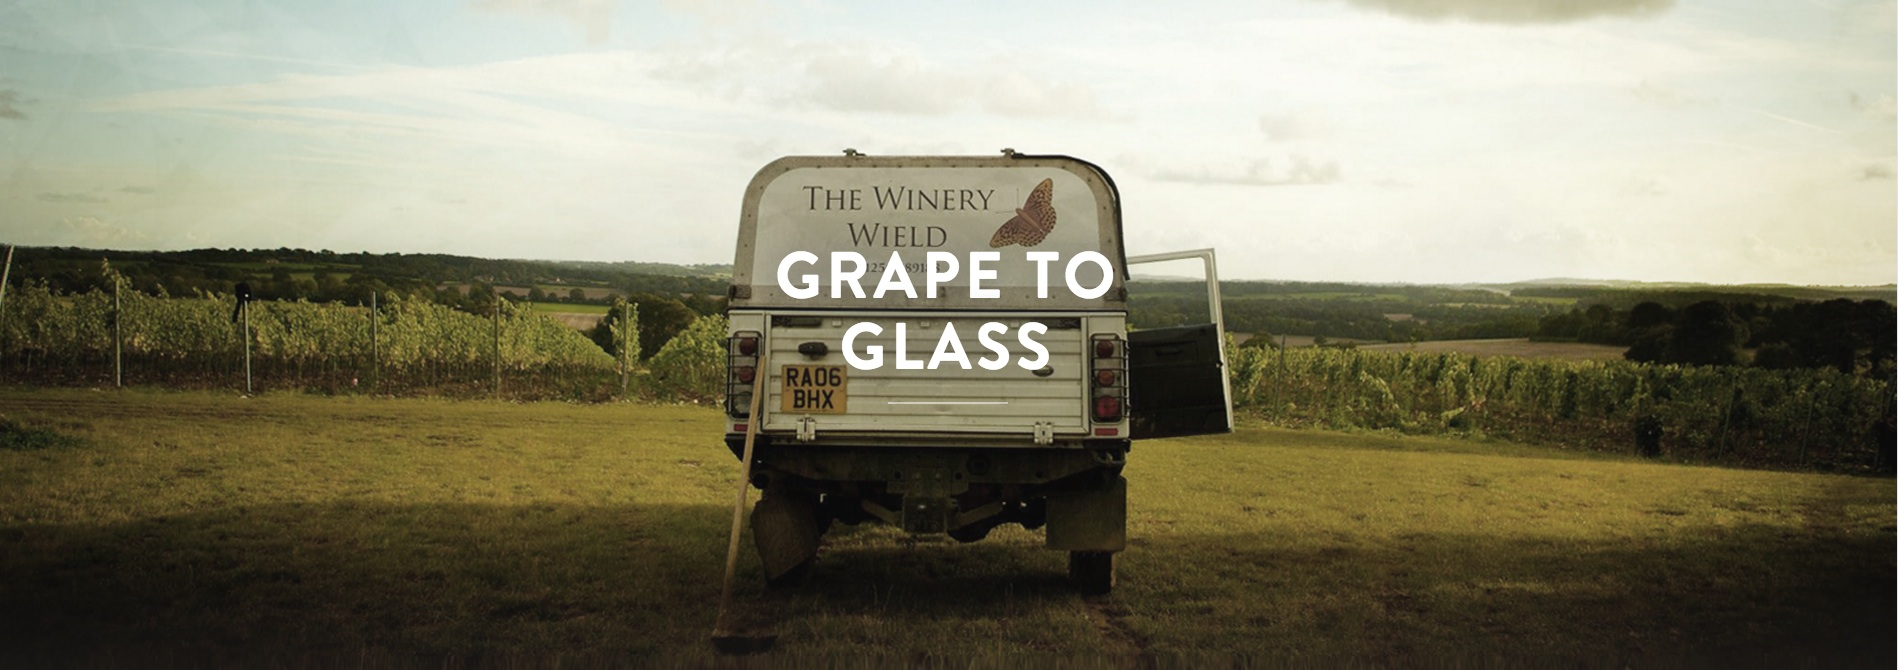 Hattingley Valley English Wine Production Land Rover